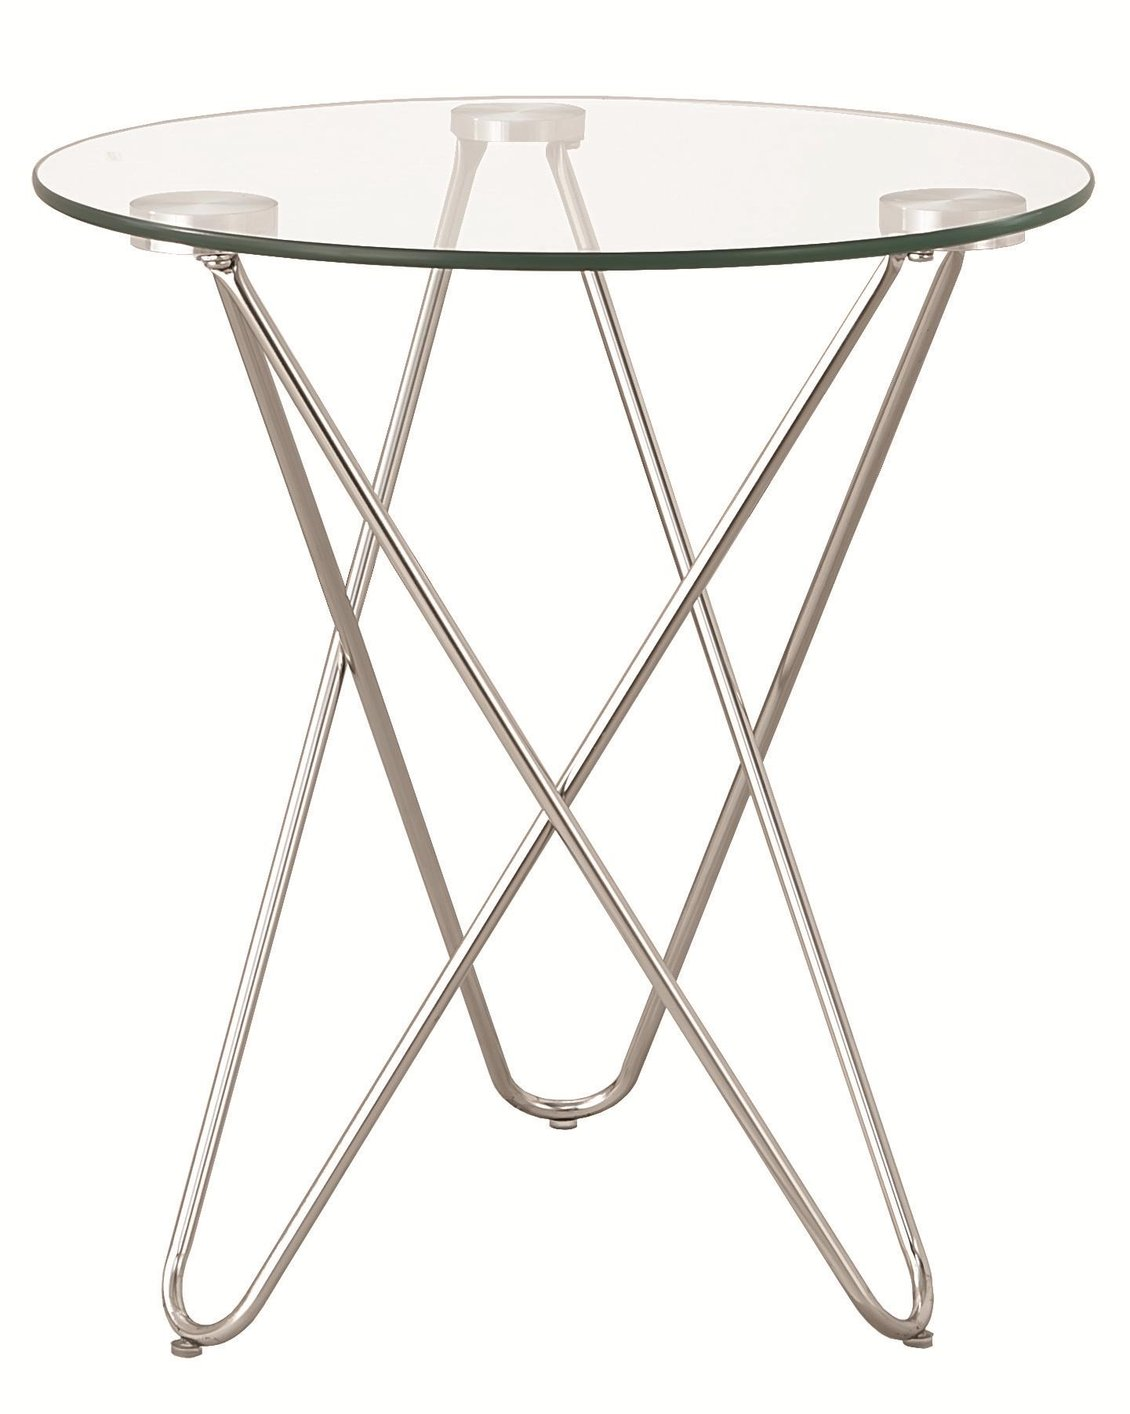 clear metal accent table steal sofa furniture los angeles silver glass house interior ideas wood floor trim light bulbs wisteria lamp farmhouse style dining chairs pier one